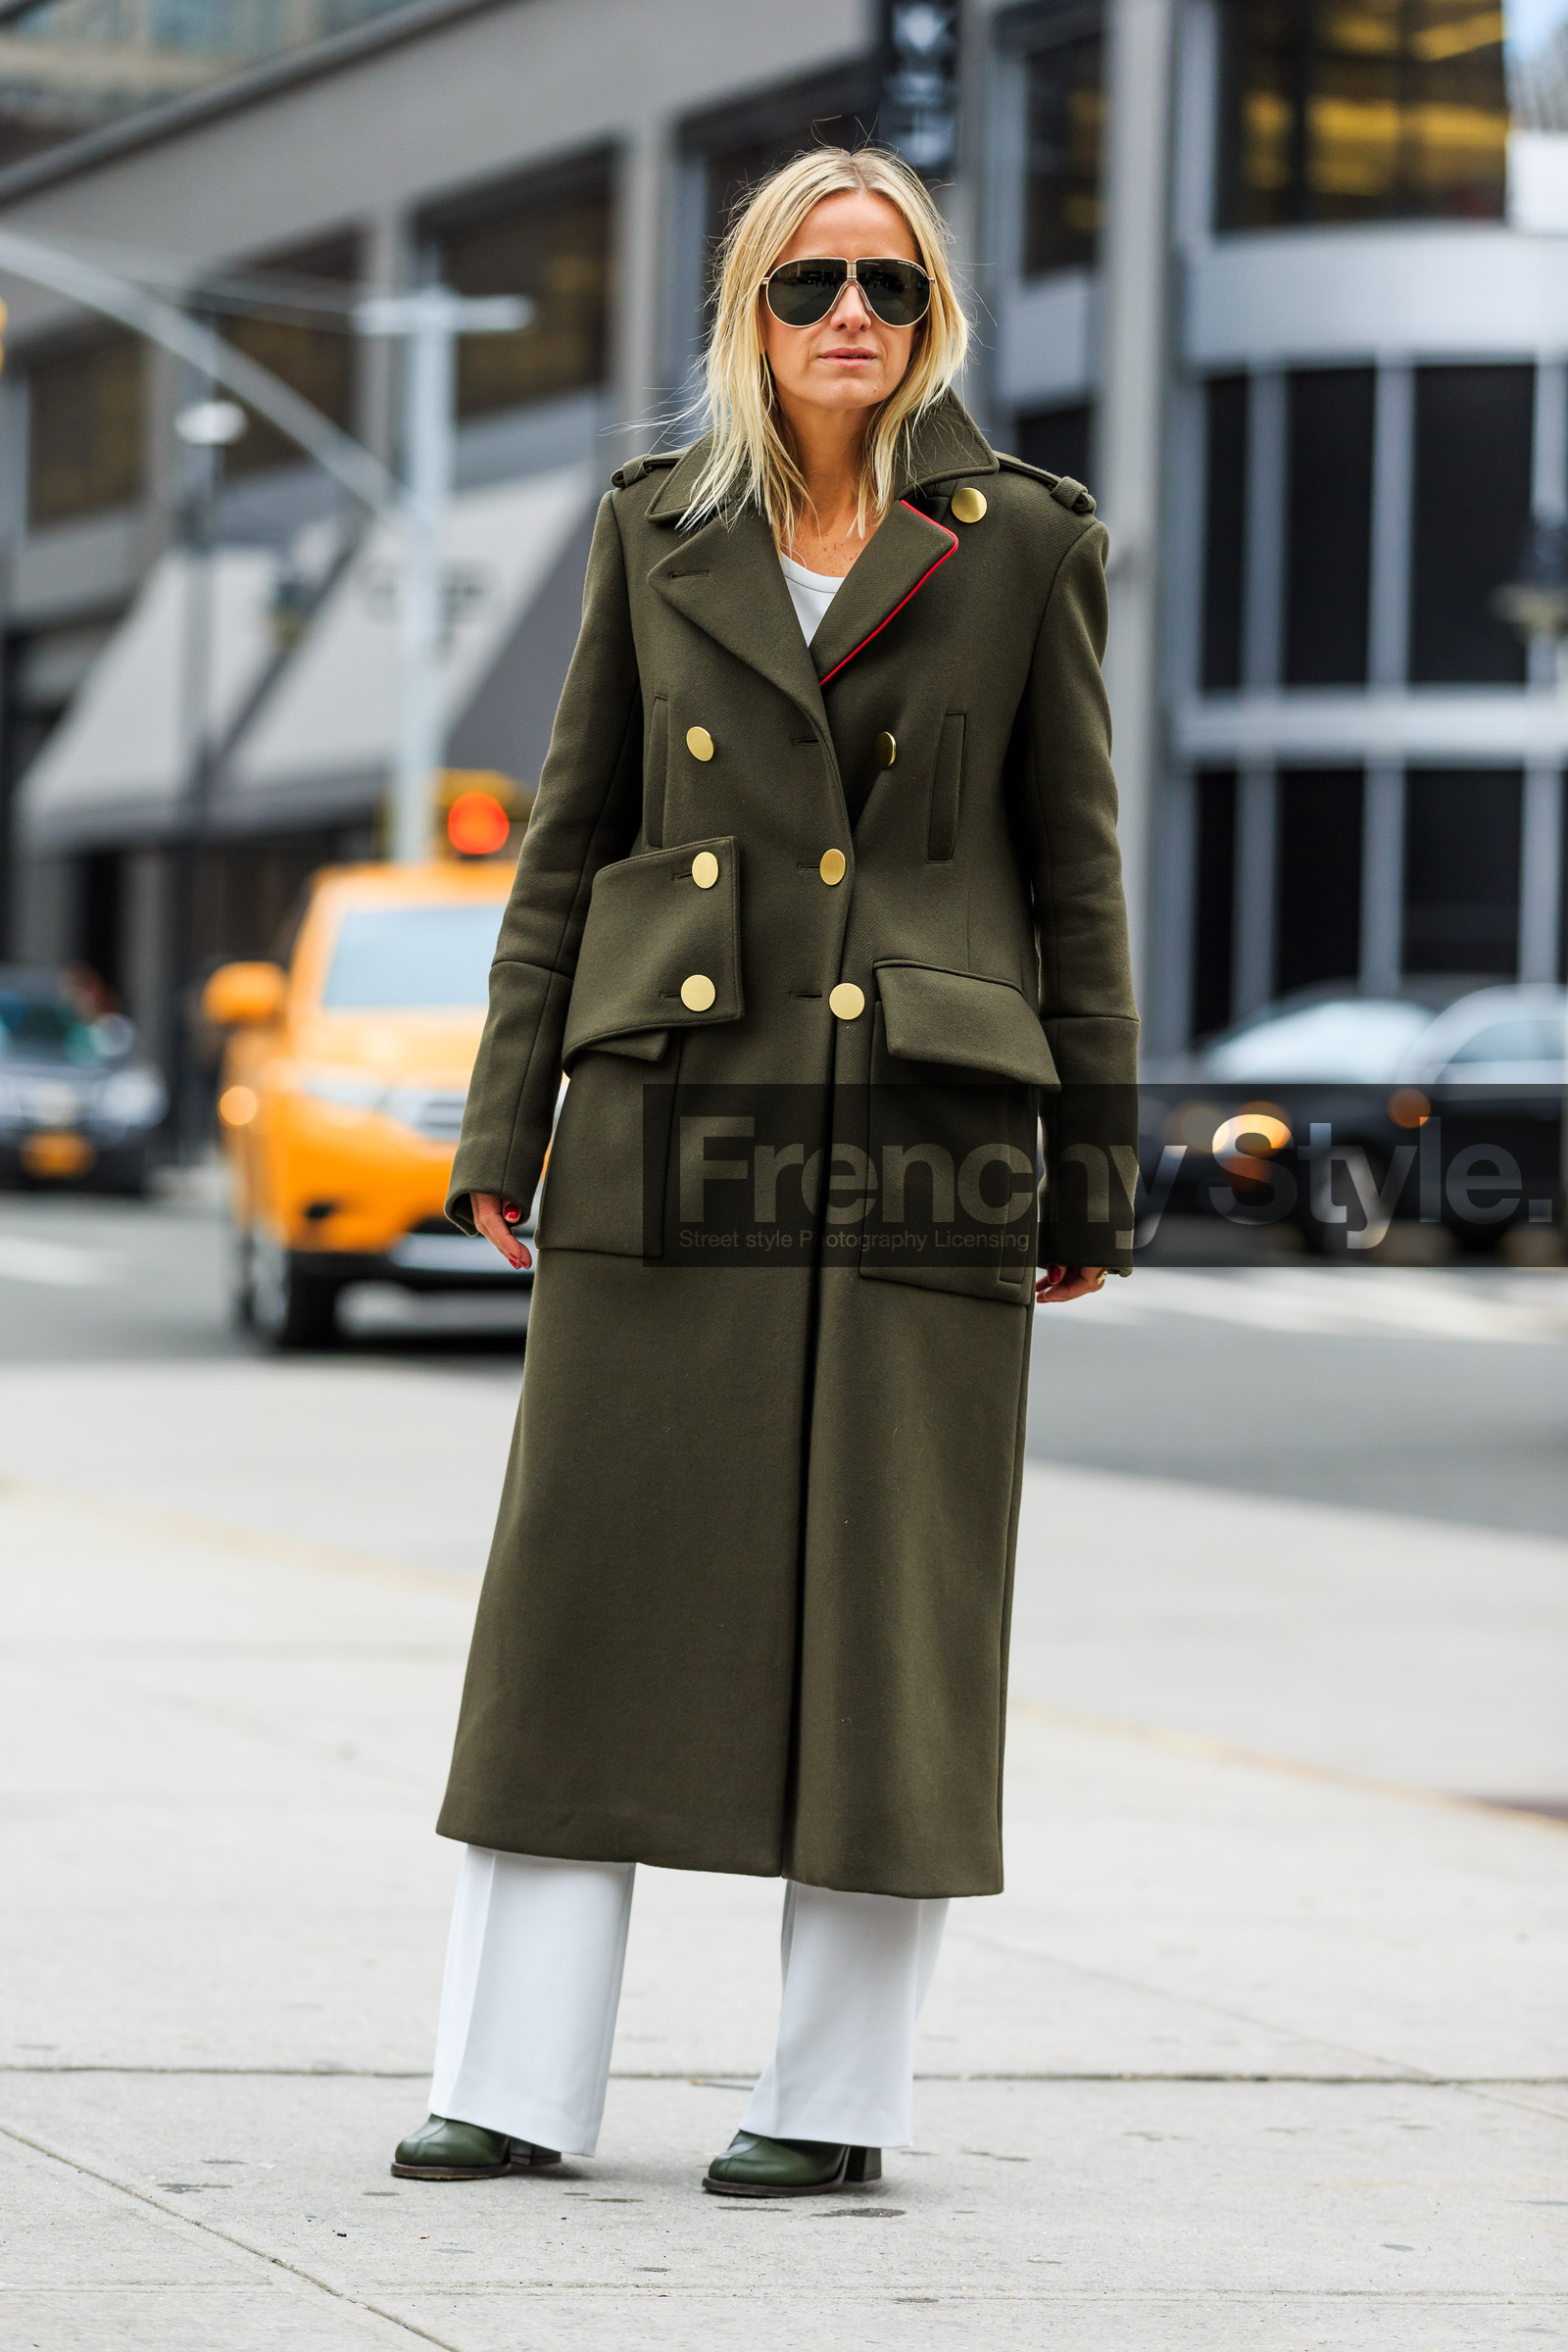 Frenchy style street style by jonathan Celine fashion street style